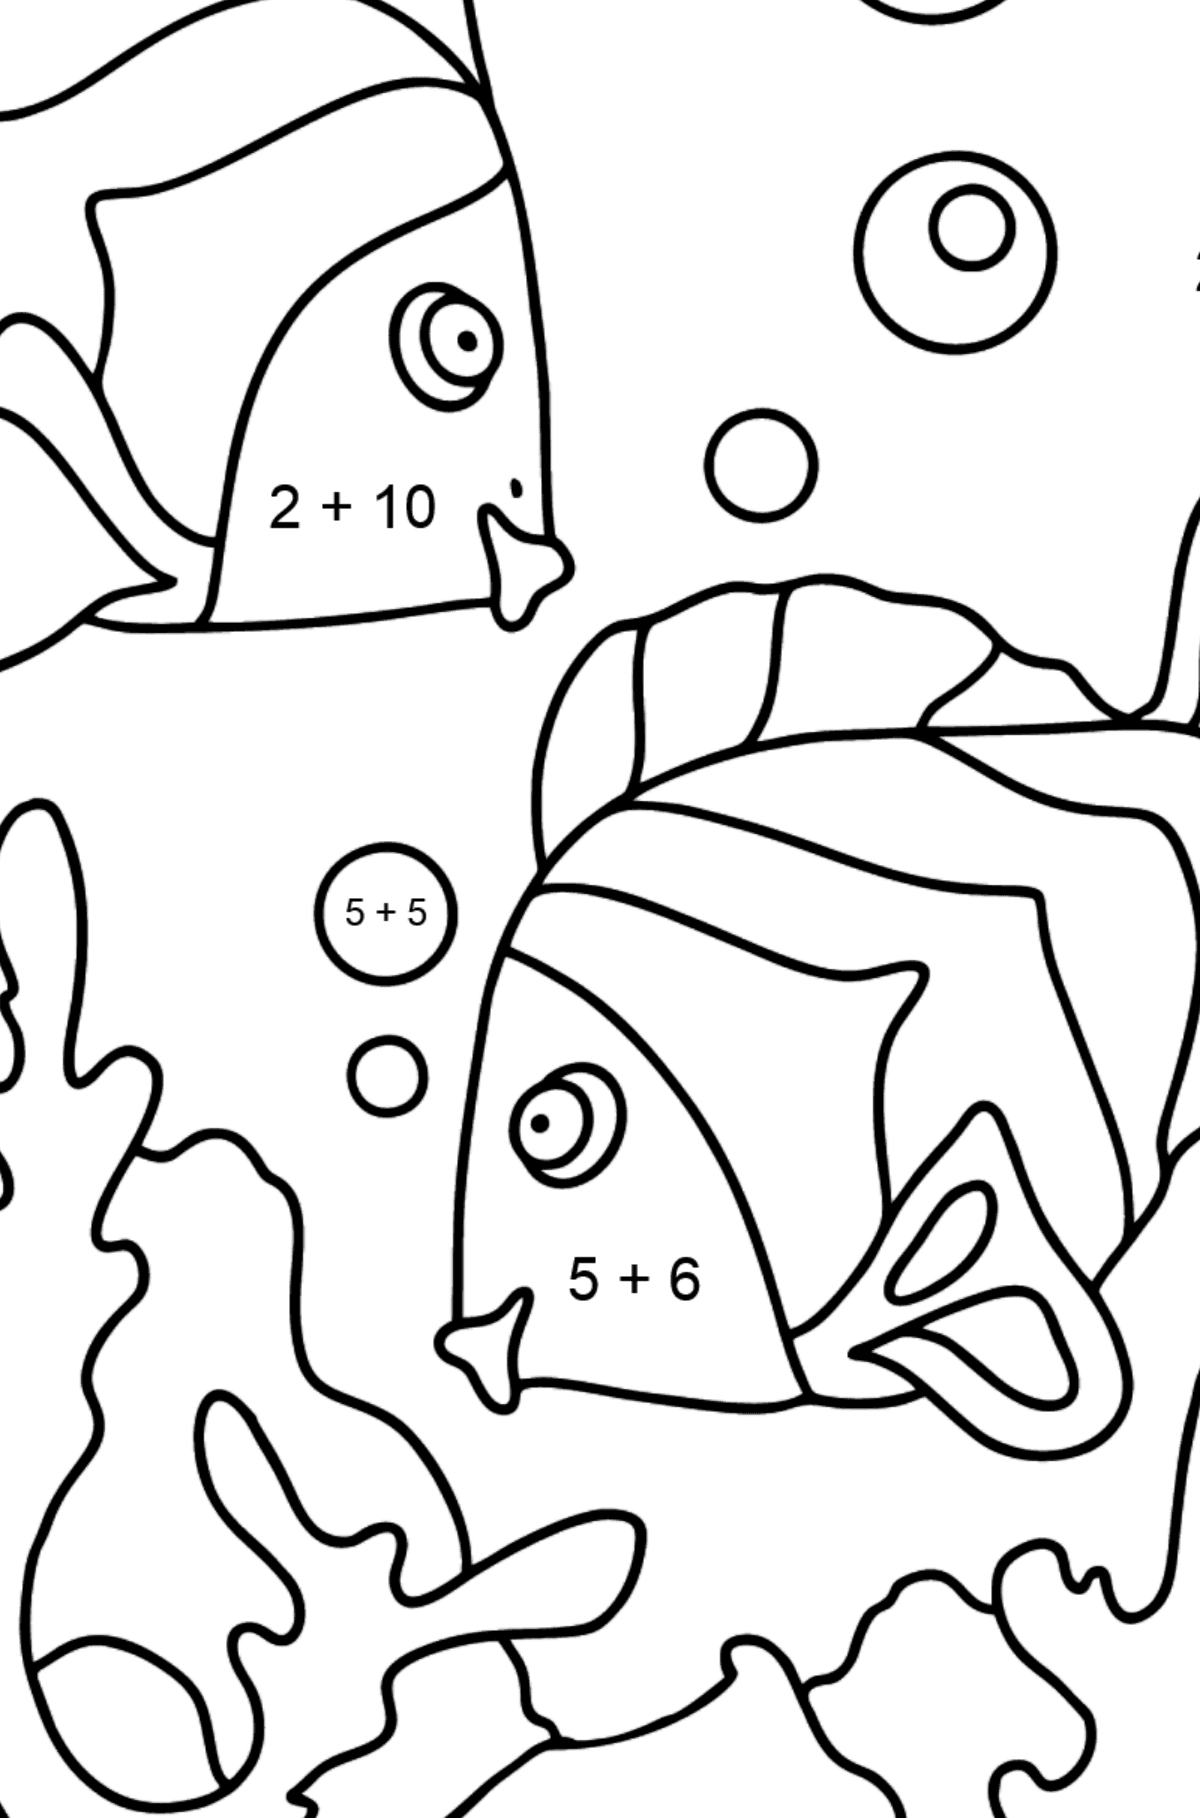 Coloring Page - Fish are Playing Happily - Math Coloring - Addition for Kids